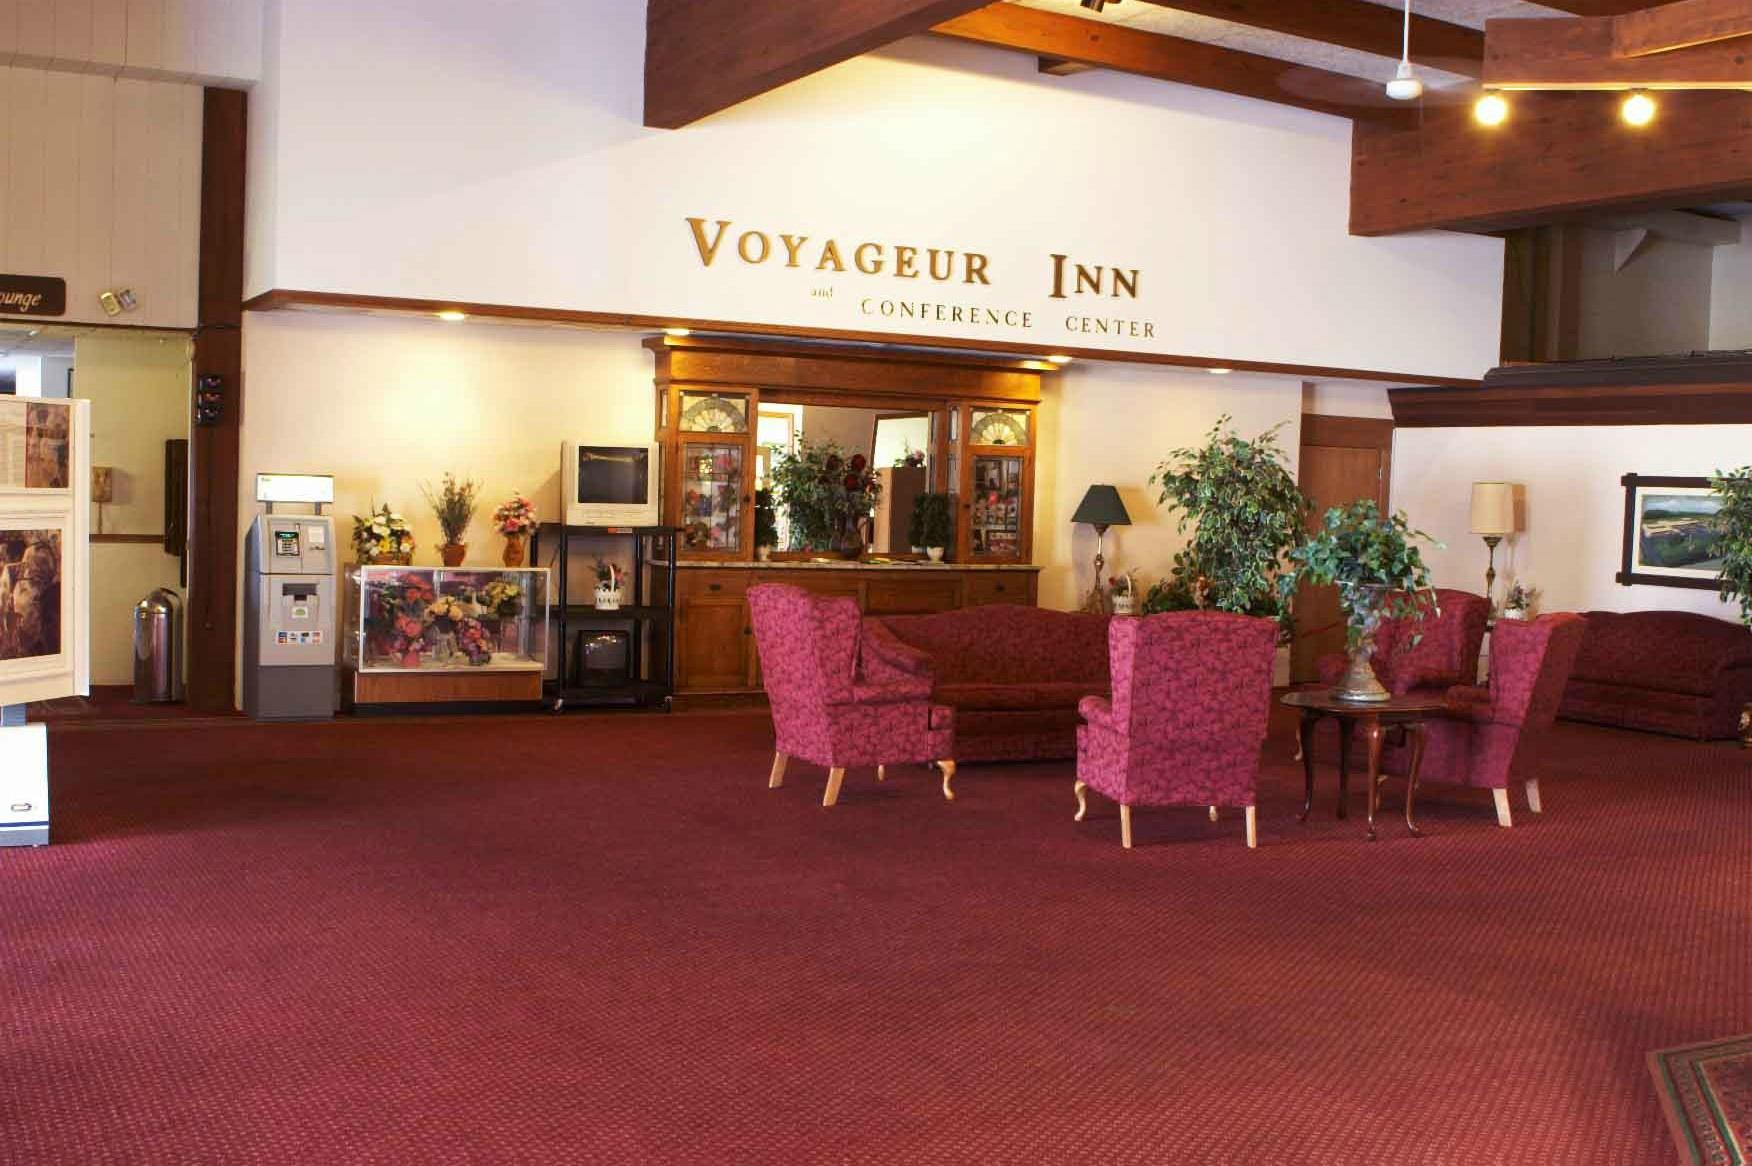 Voyageur Inn and Conference Center